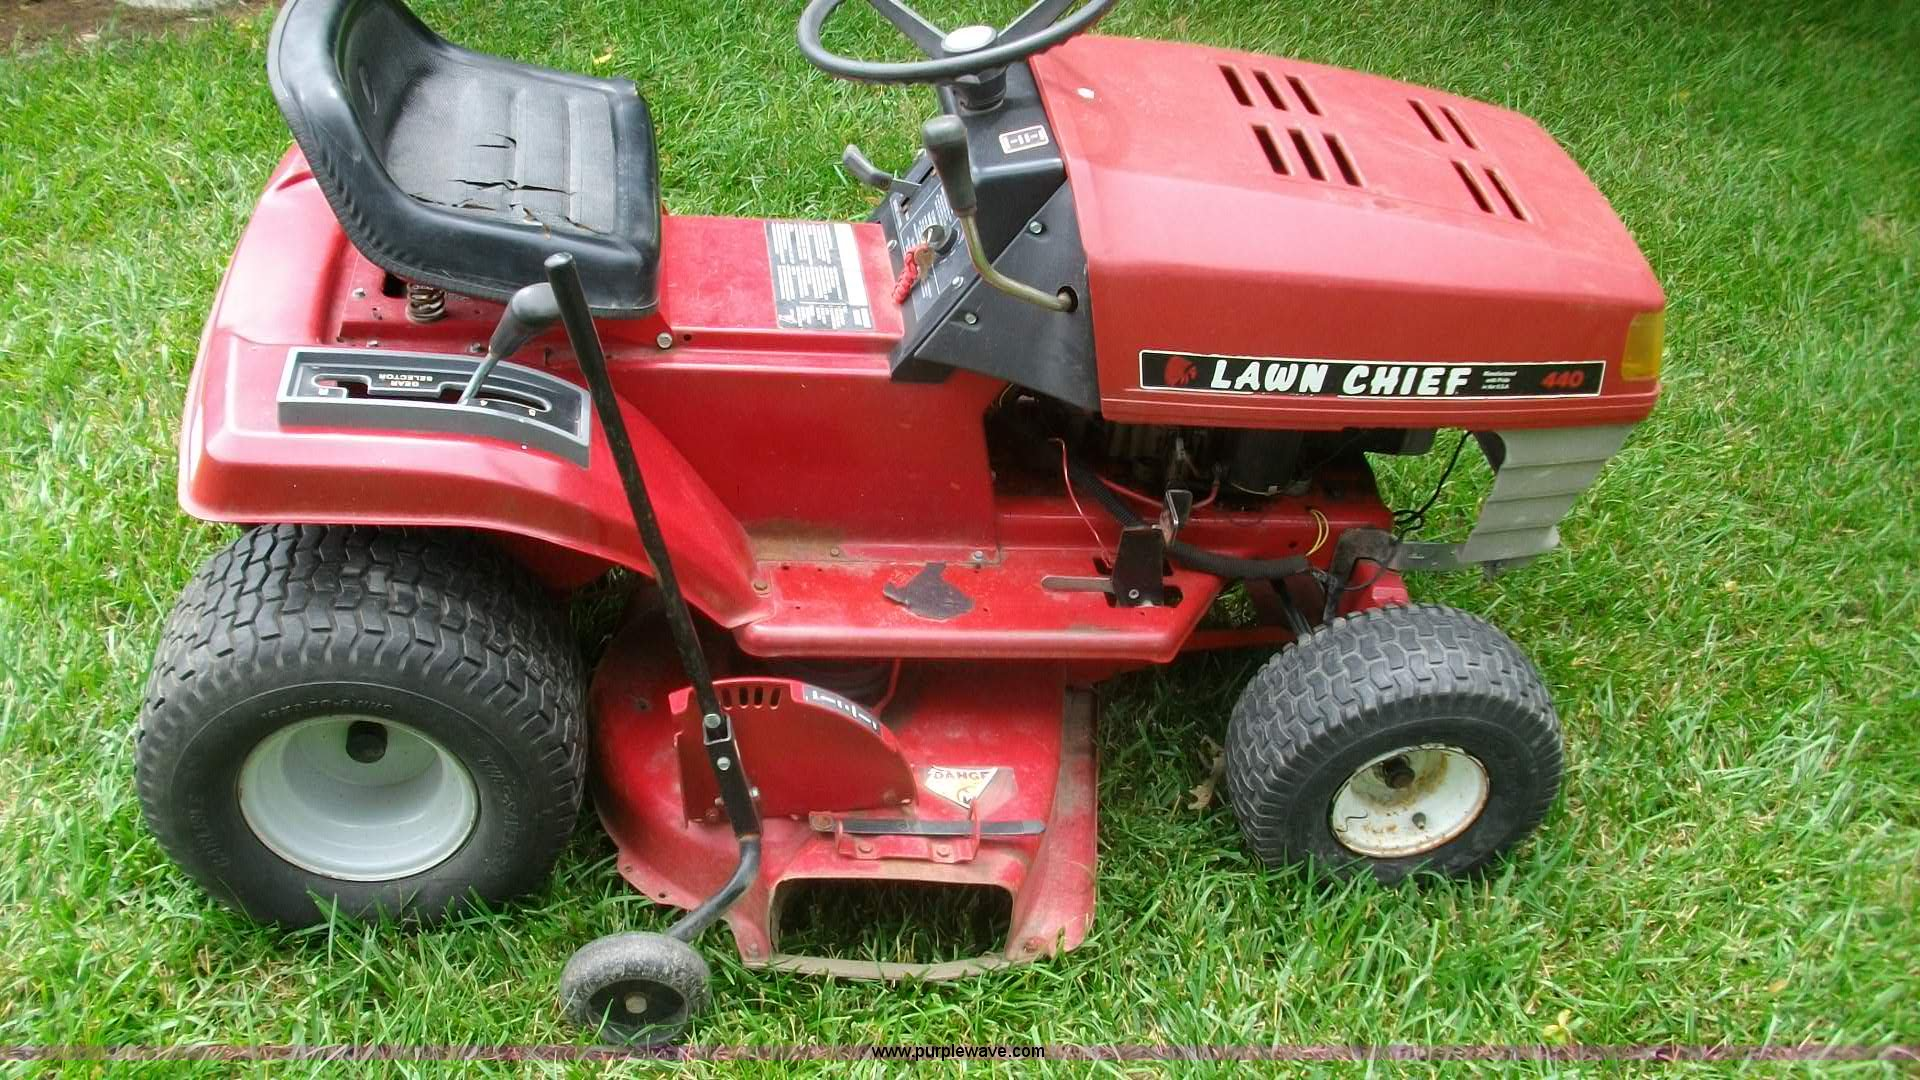 C1206 image for item C1206 Lawn Chief 440 riding mower